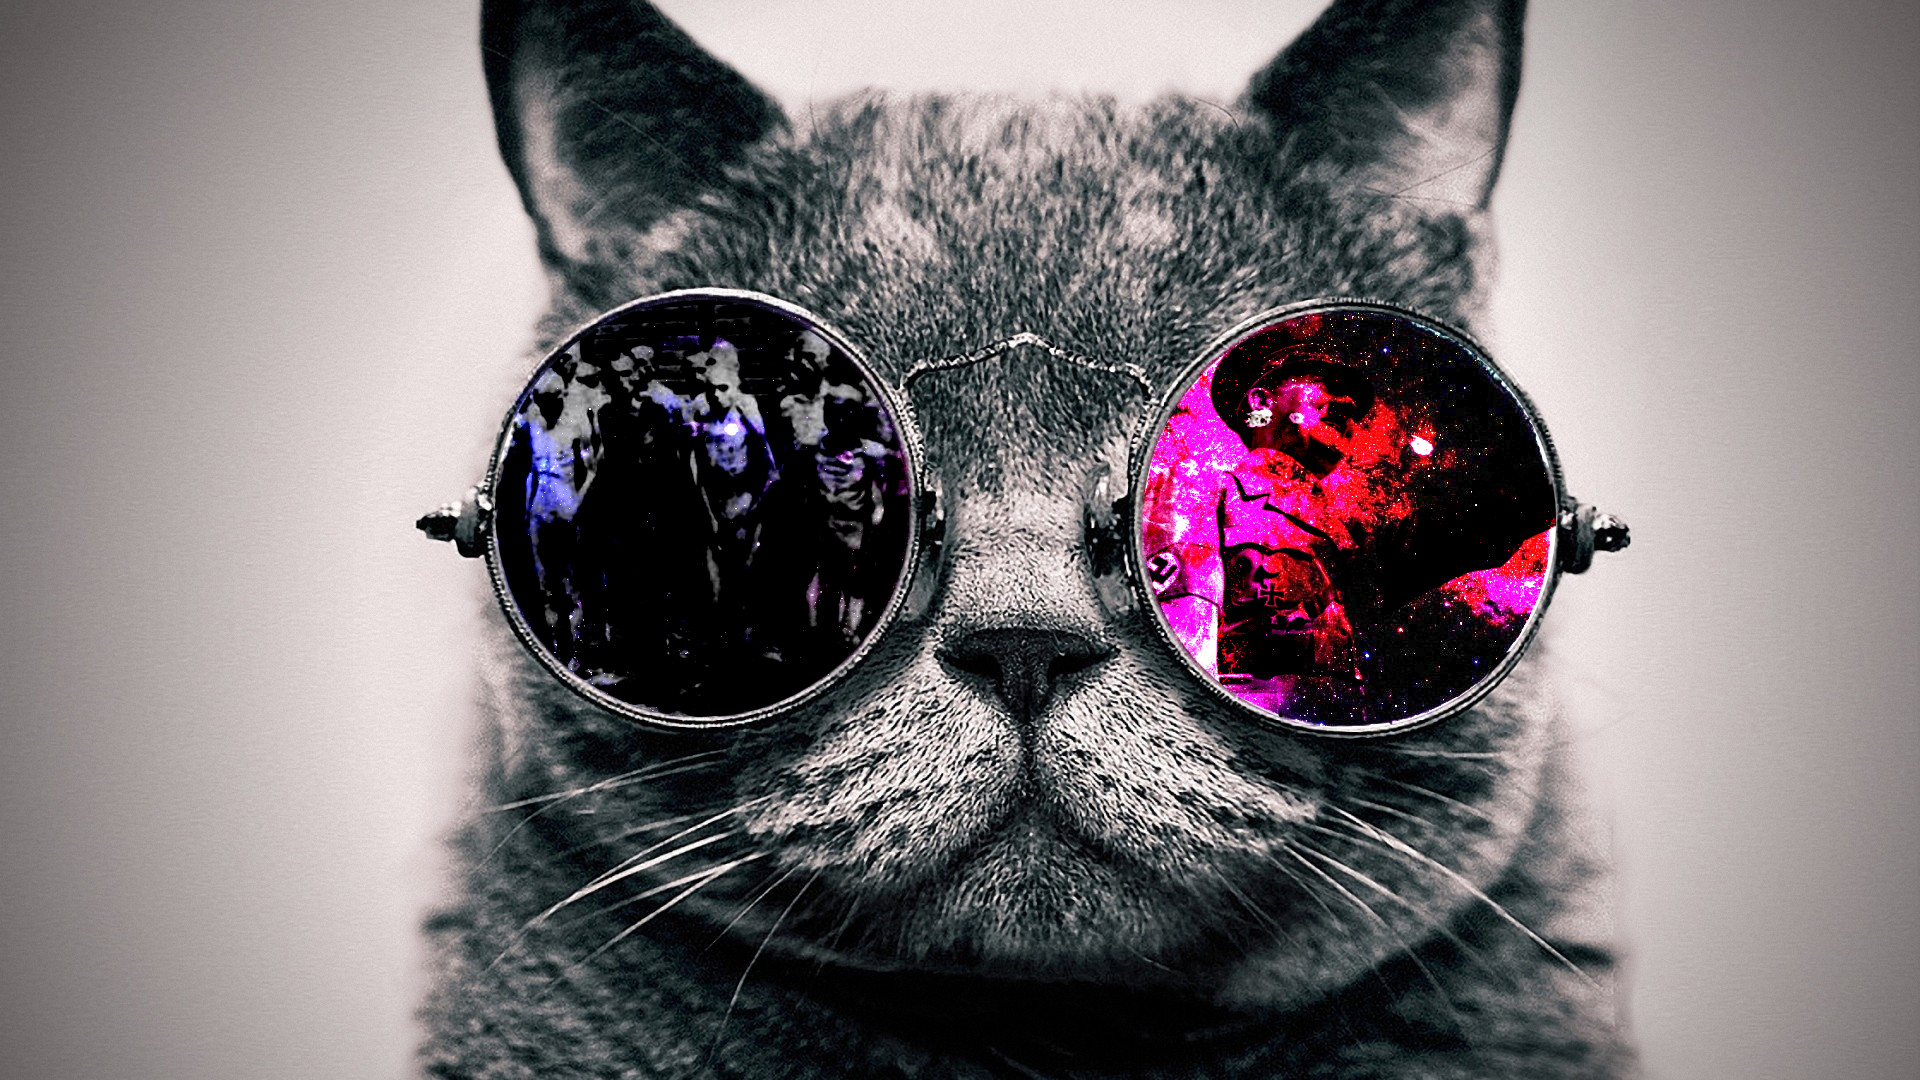 Cool Cat [1920×1080] Need #iPhone #6S #Plus #Wallpaper/ #Background for  #IPhone6SPlus? Follow iPhone 6S Plus 3Wallpapers/ #Backgrounds Must to Have…